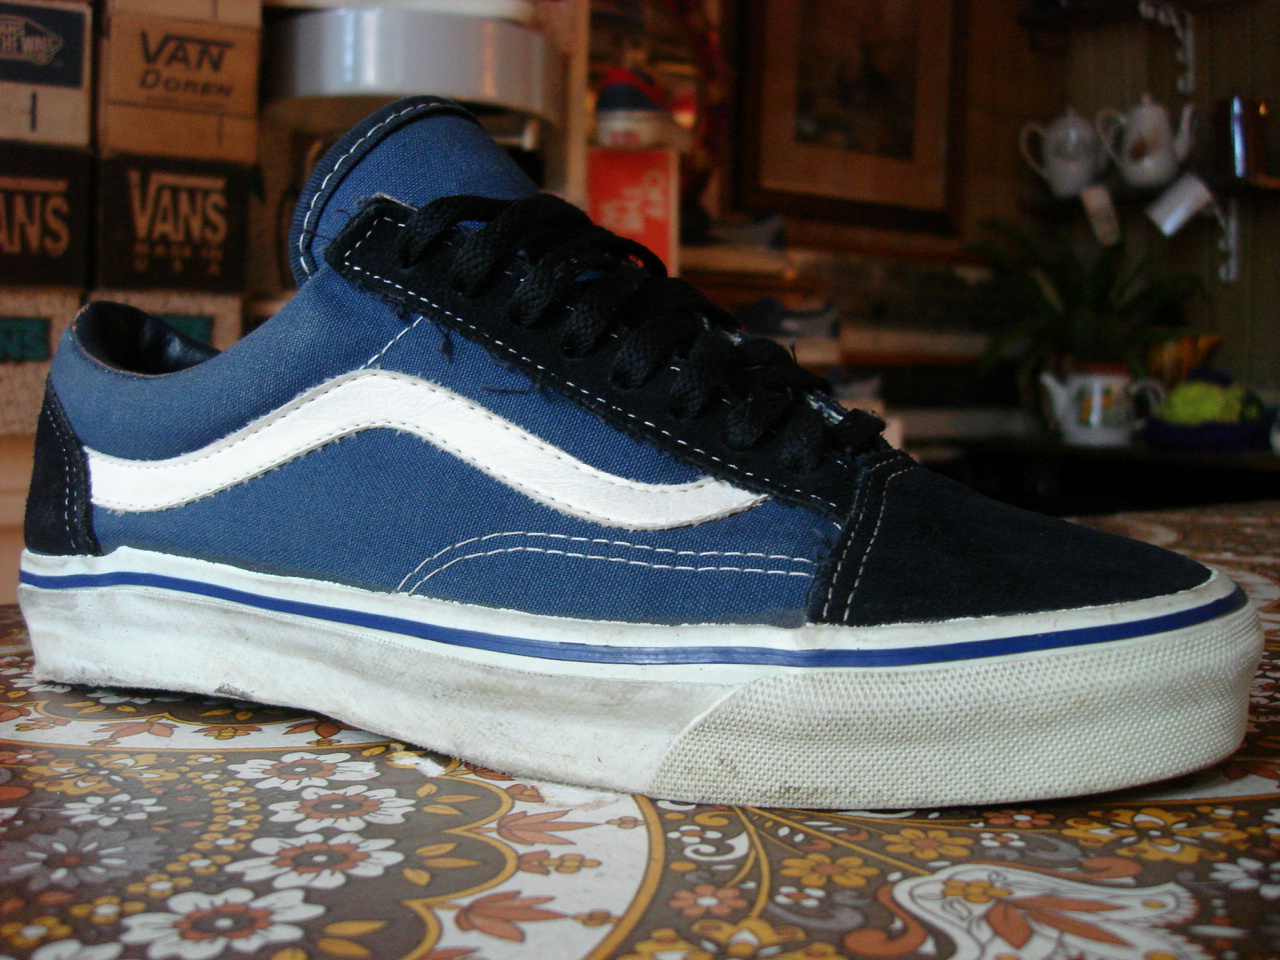 theothersideofthepillow vintage vans navy old skool style. Black Bedroom Furniture Sets. Home Design Ideas